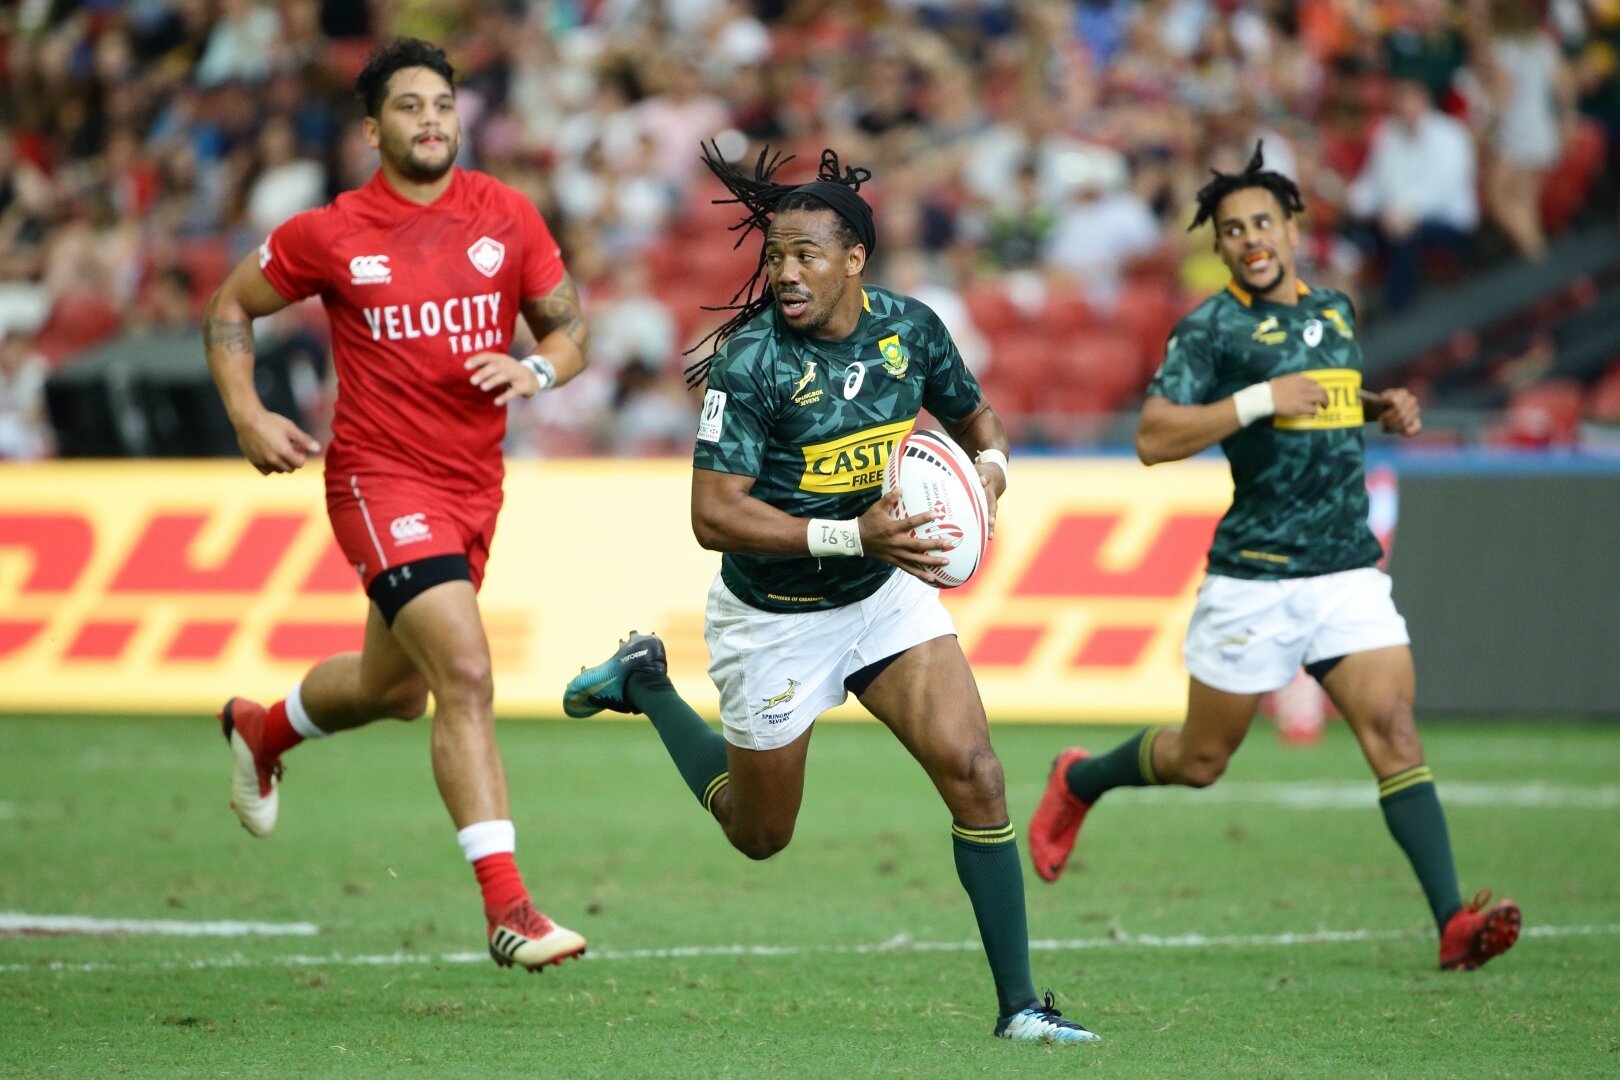 Major League Rugby side sign former Springbok and Olympic medallist in wake of Ma'a Nonu departure